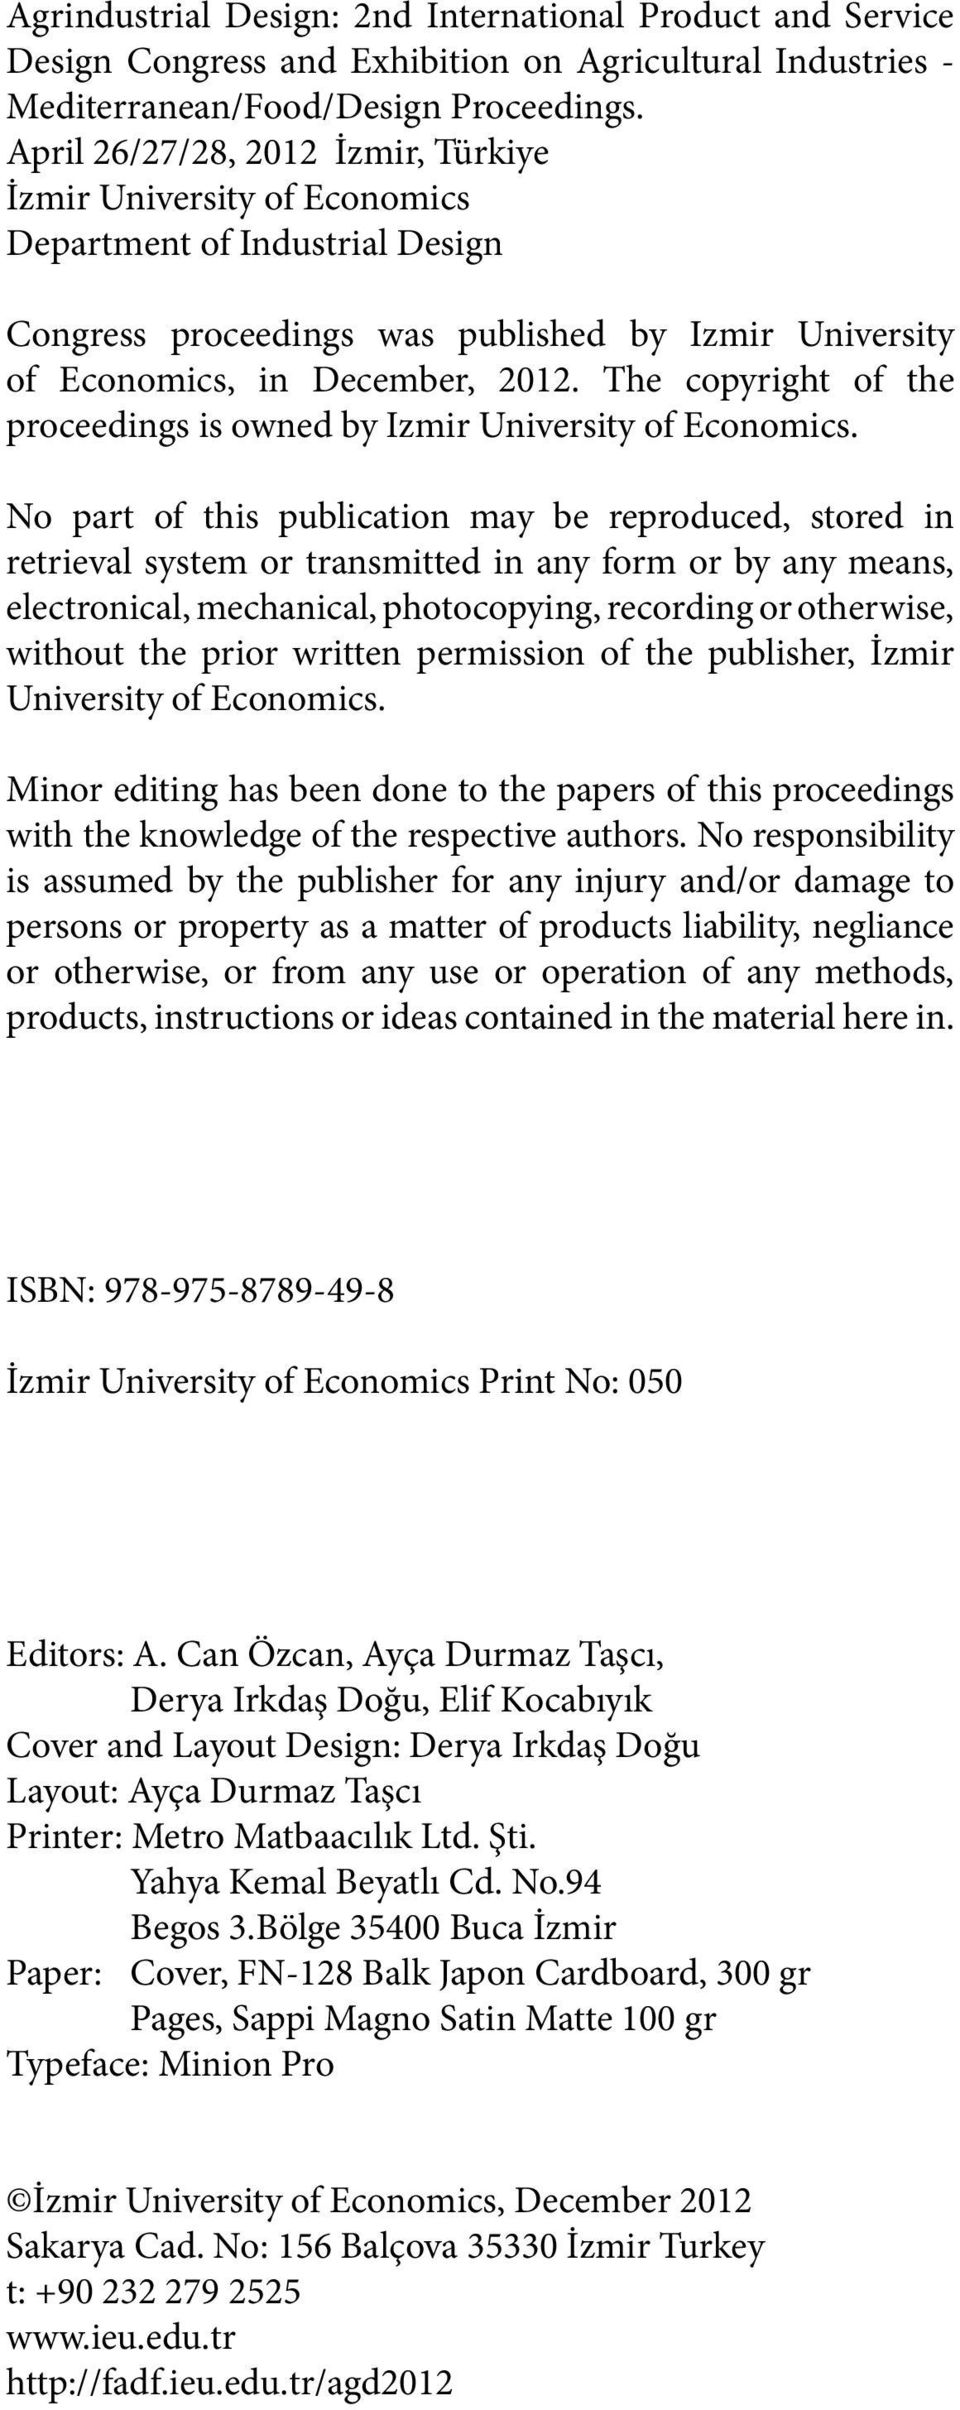 The copyright of the proceedings is owned by Izmir University of Economics.